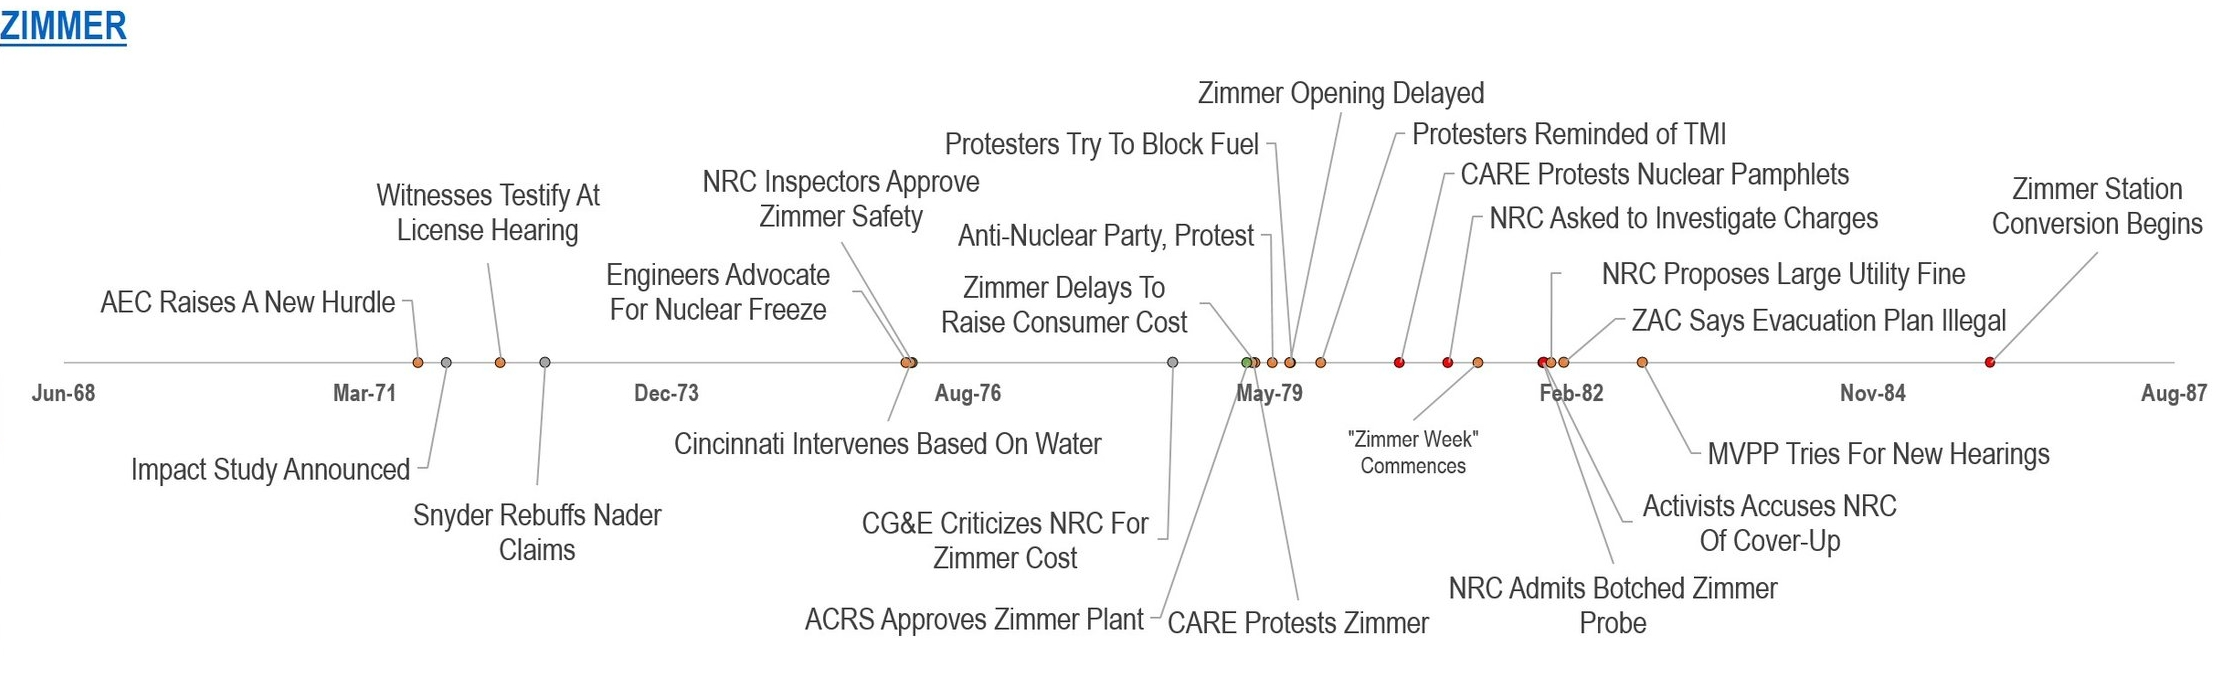 """""""The cries of protest that rang out for years against a nuclear-powered Zimmer Power Plant,"""" wrote the Cincinnati Enquirer in 1985, """"have quieted since it was announced the plant would be converted to coal power."""""""